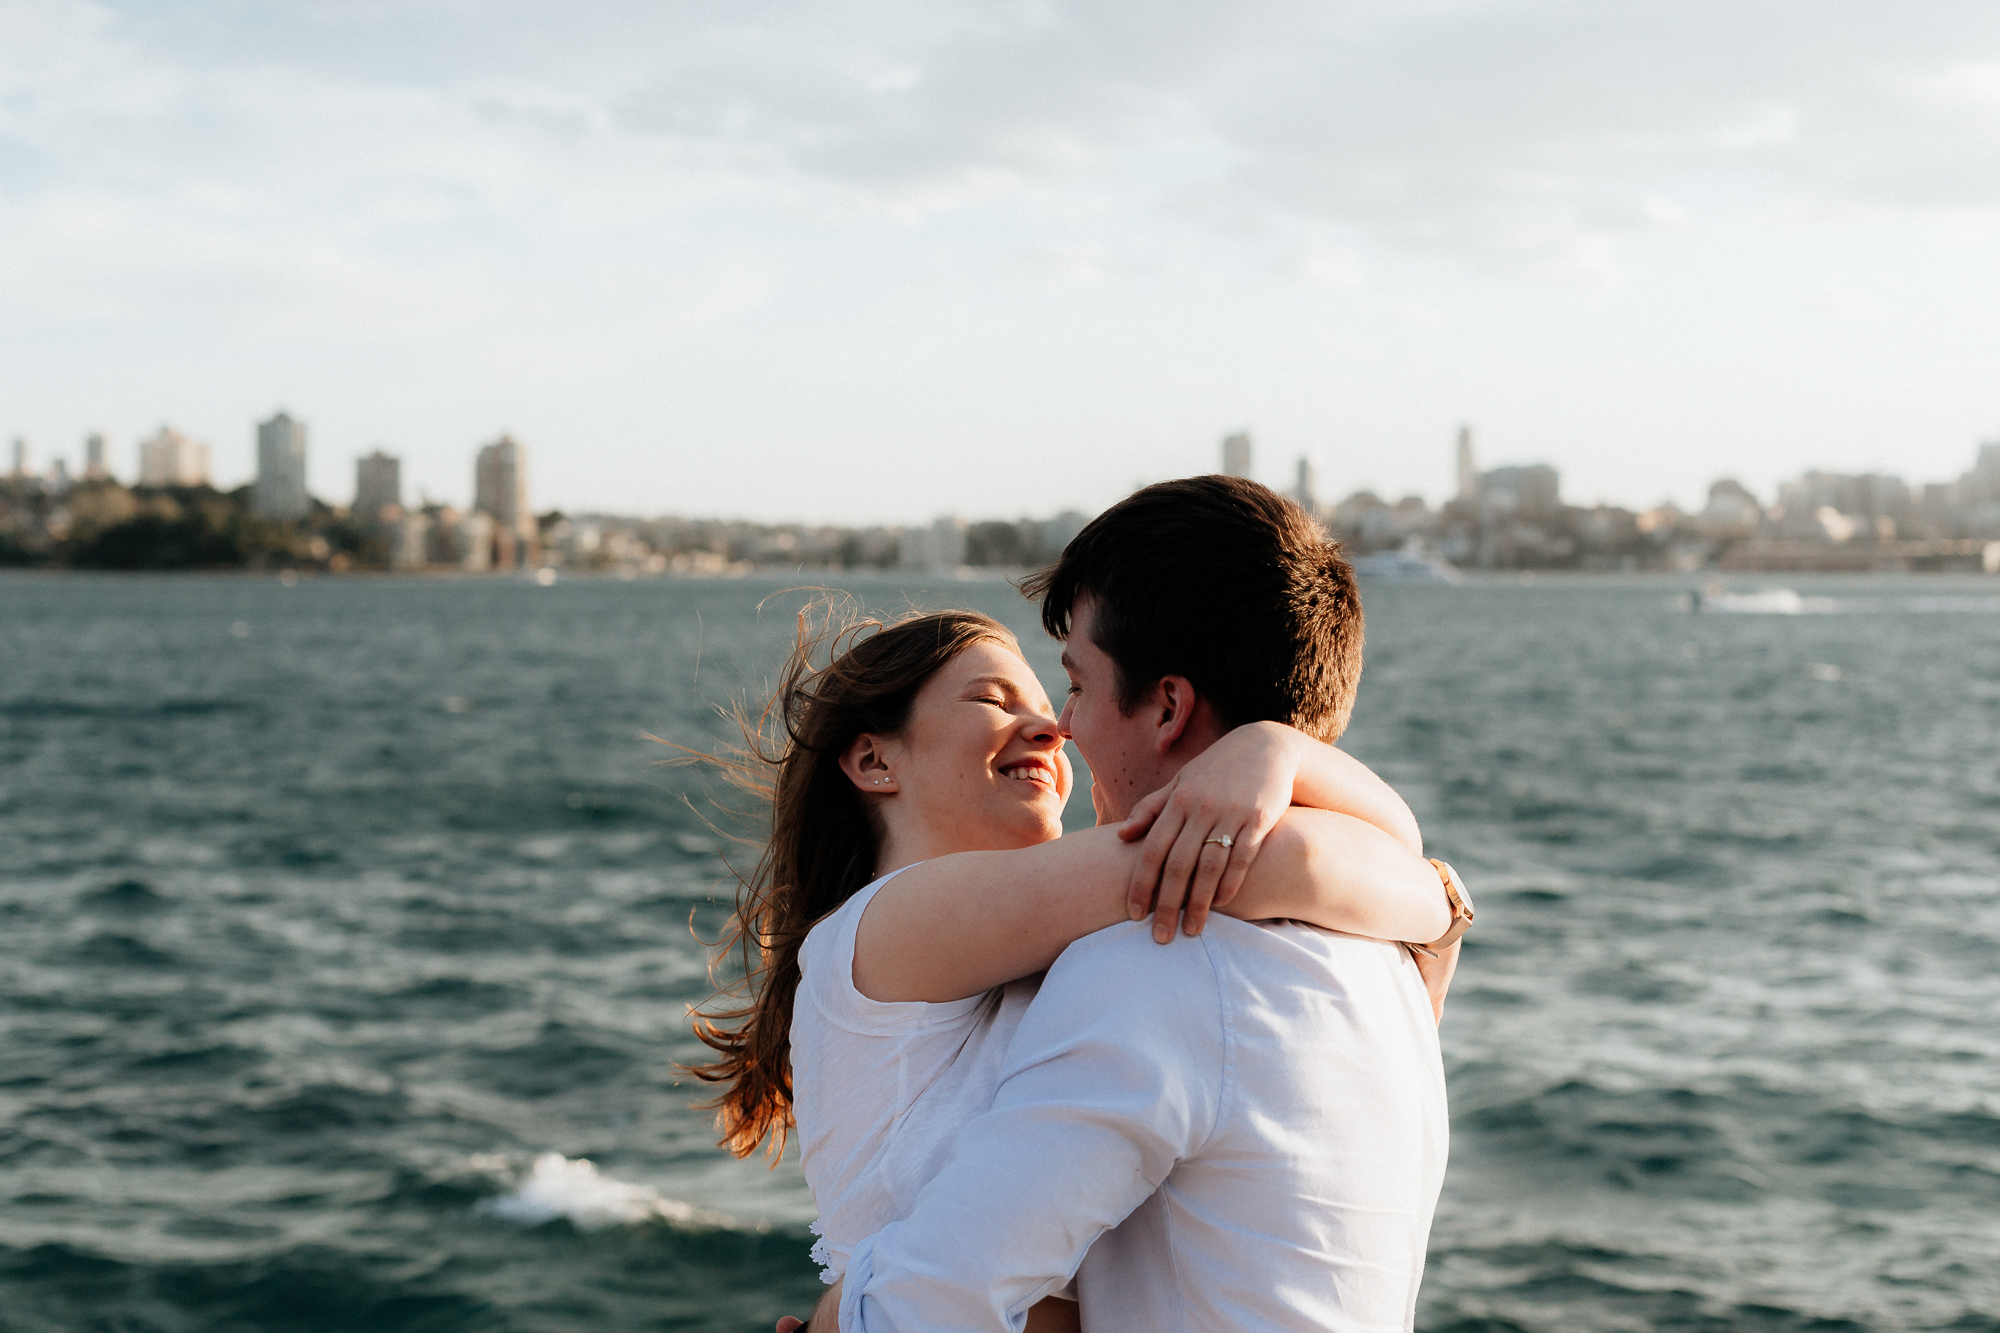 Amanzi and Steven_Engagement_Sydney_Holly Medway Photography-18.JPG